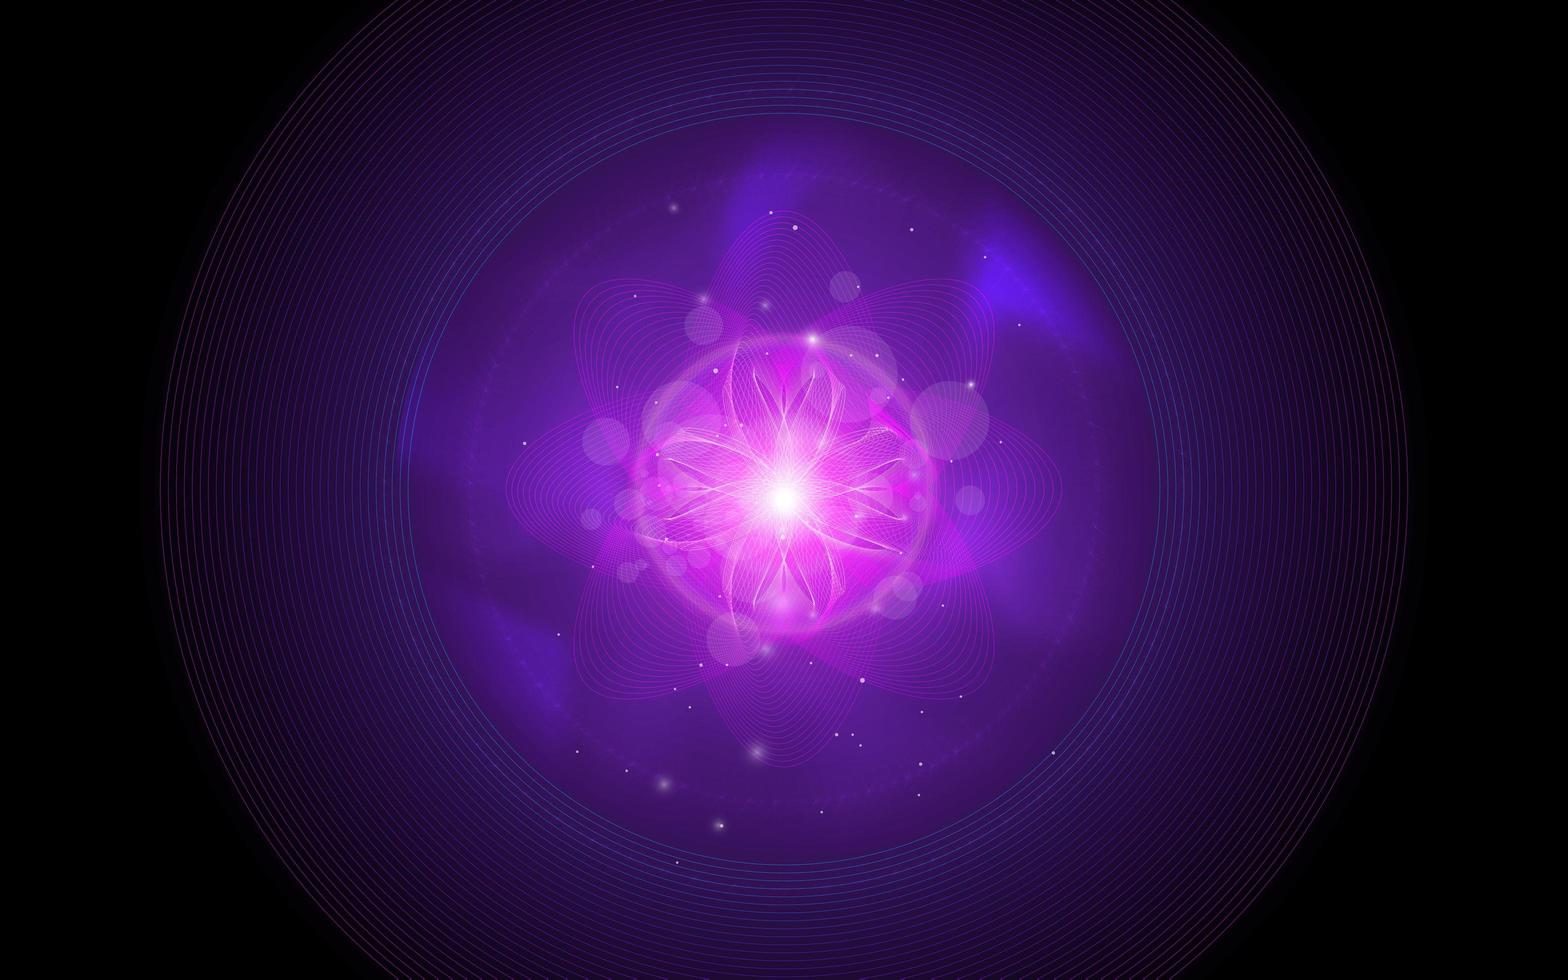 Abstract violet flower background vector